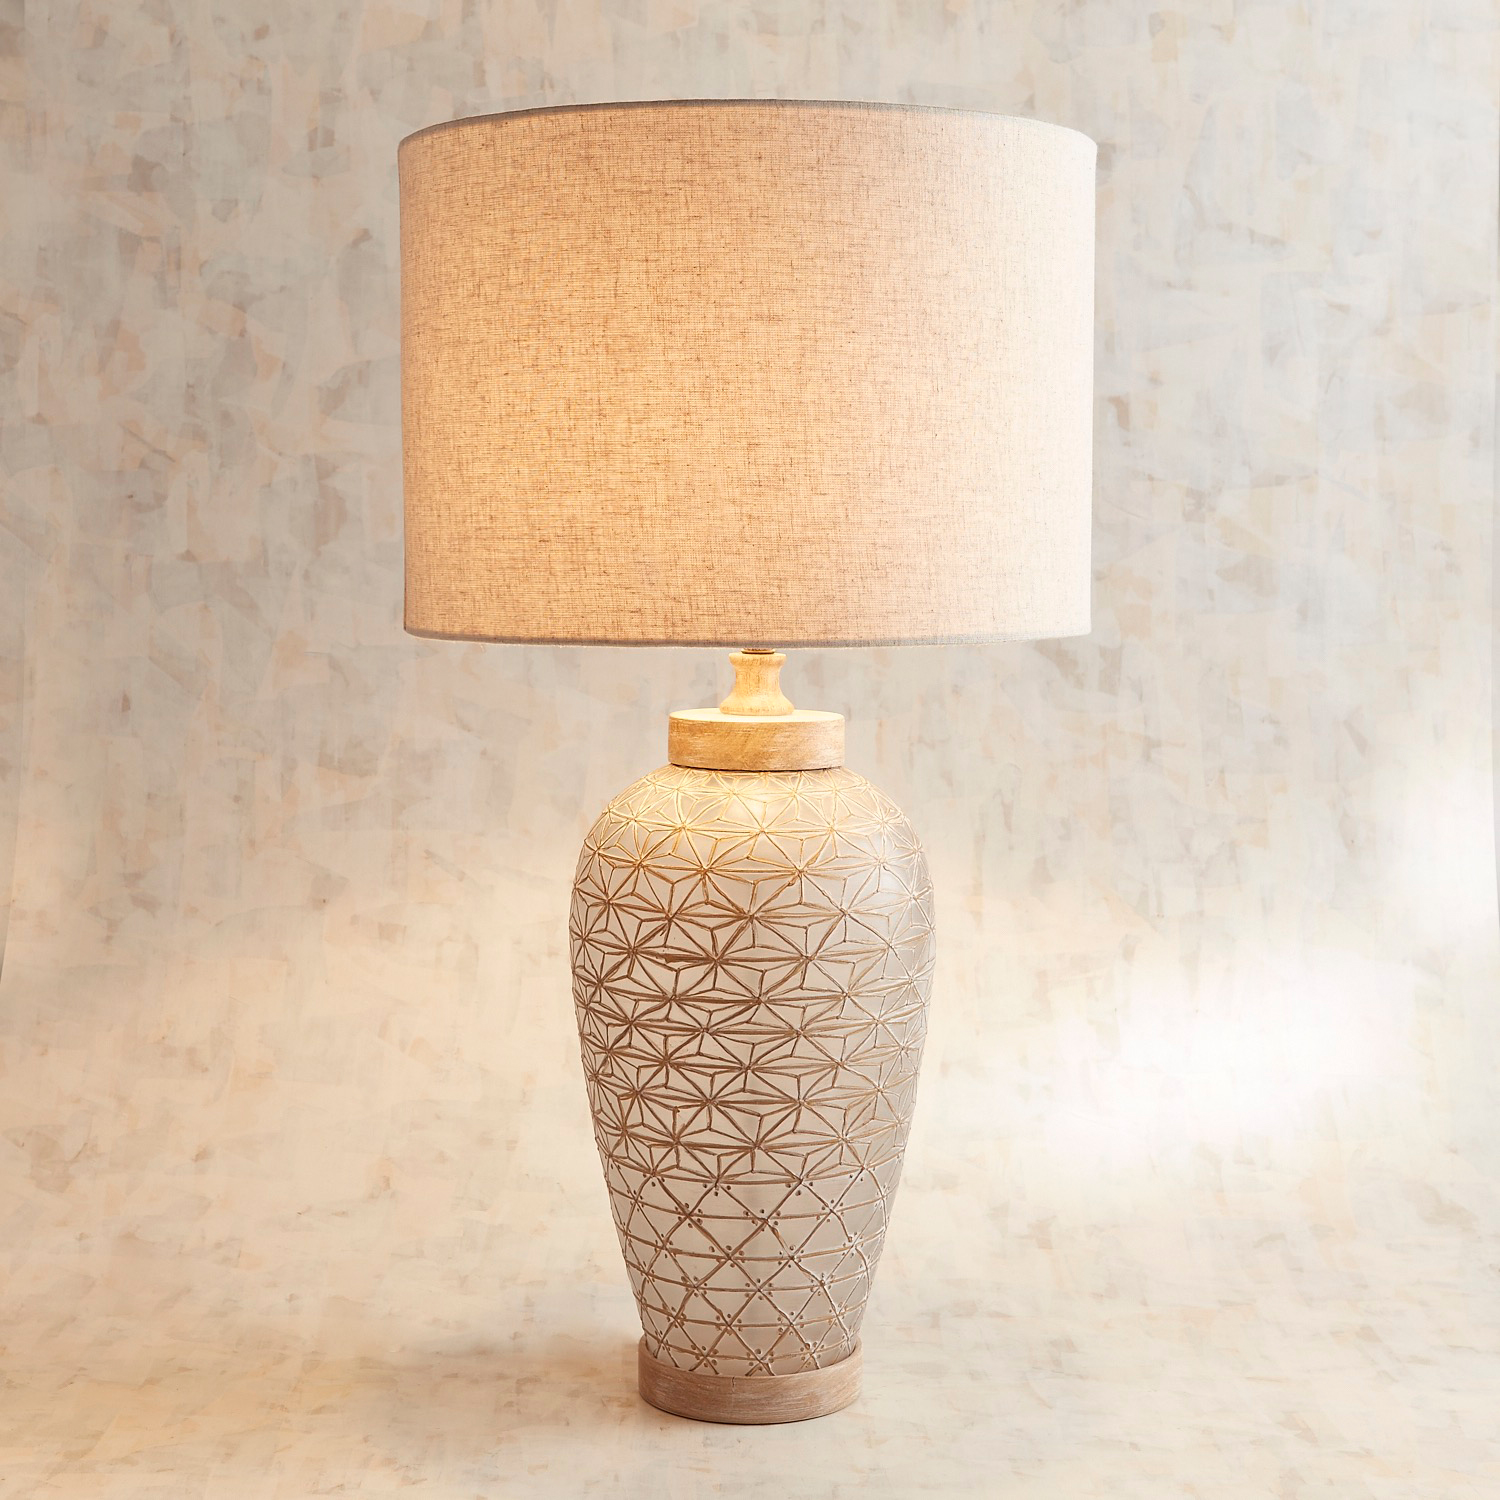 Patterned Glass Table Lamp